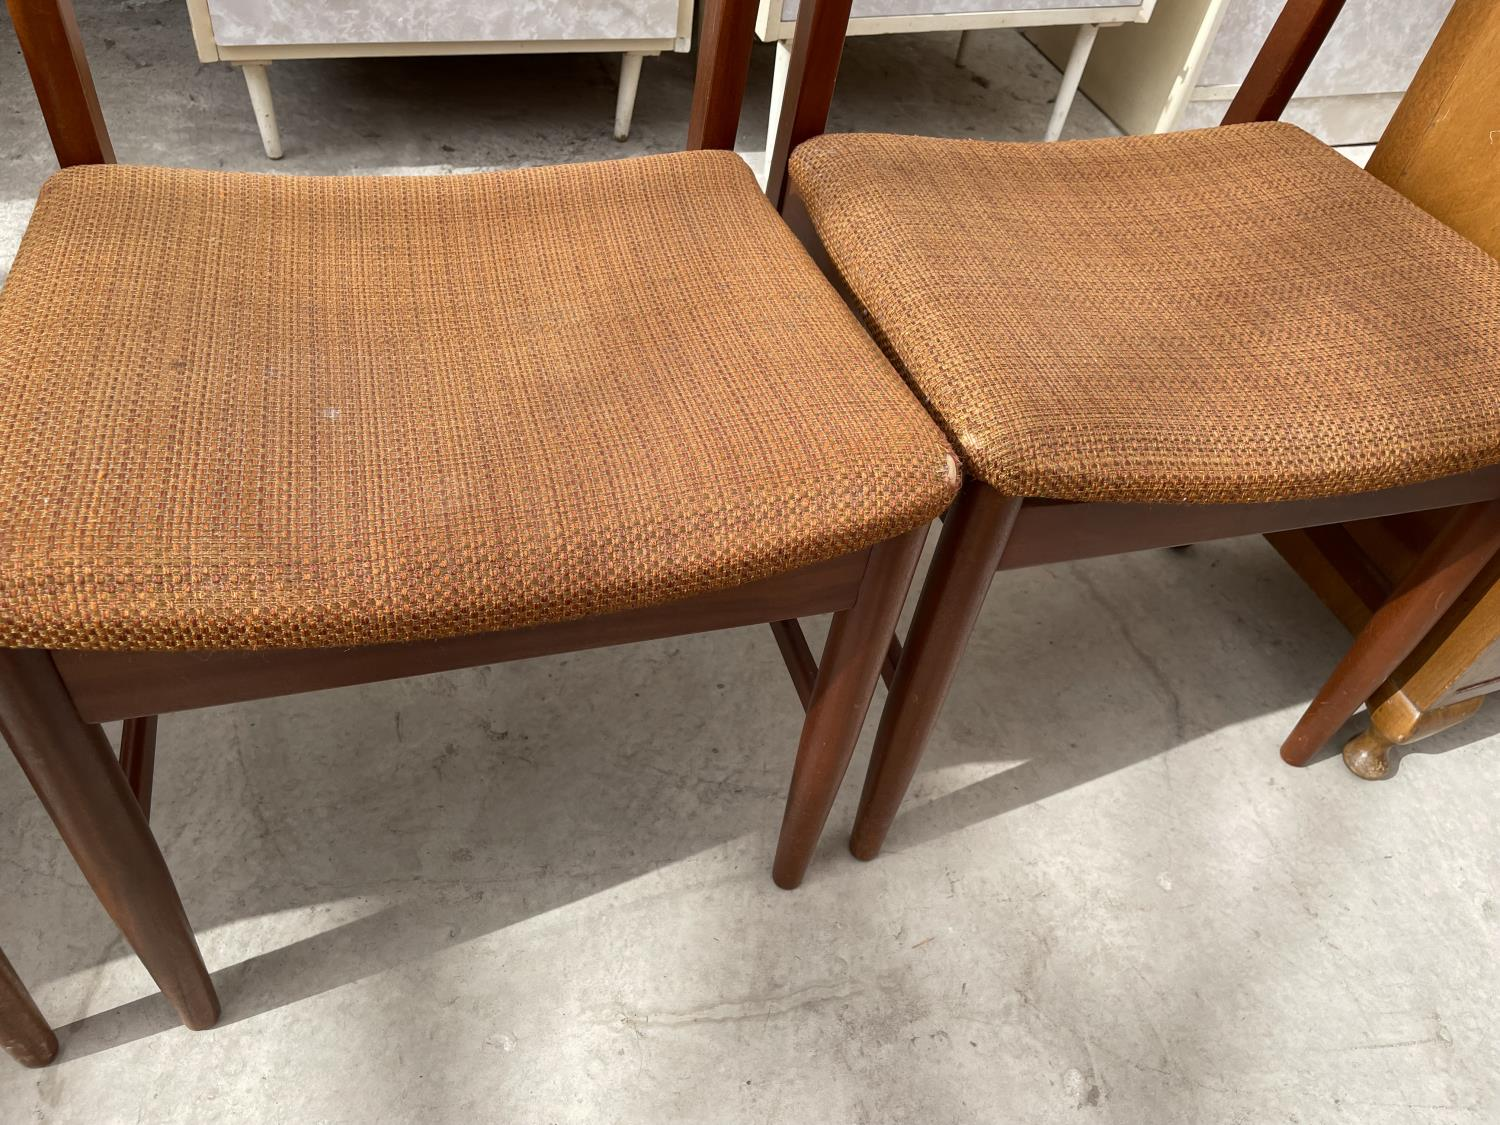 FOUR RETRO TEAK DINING CHAIRS - Image 5 of 5